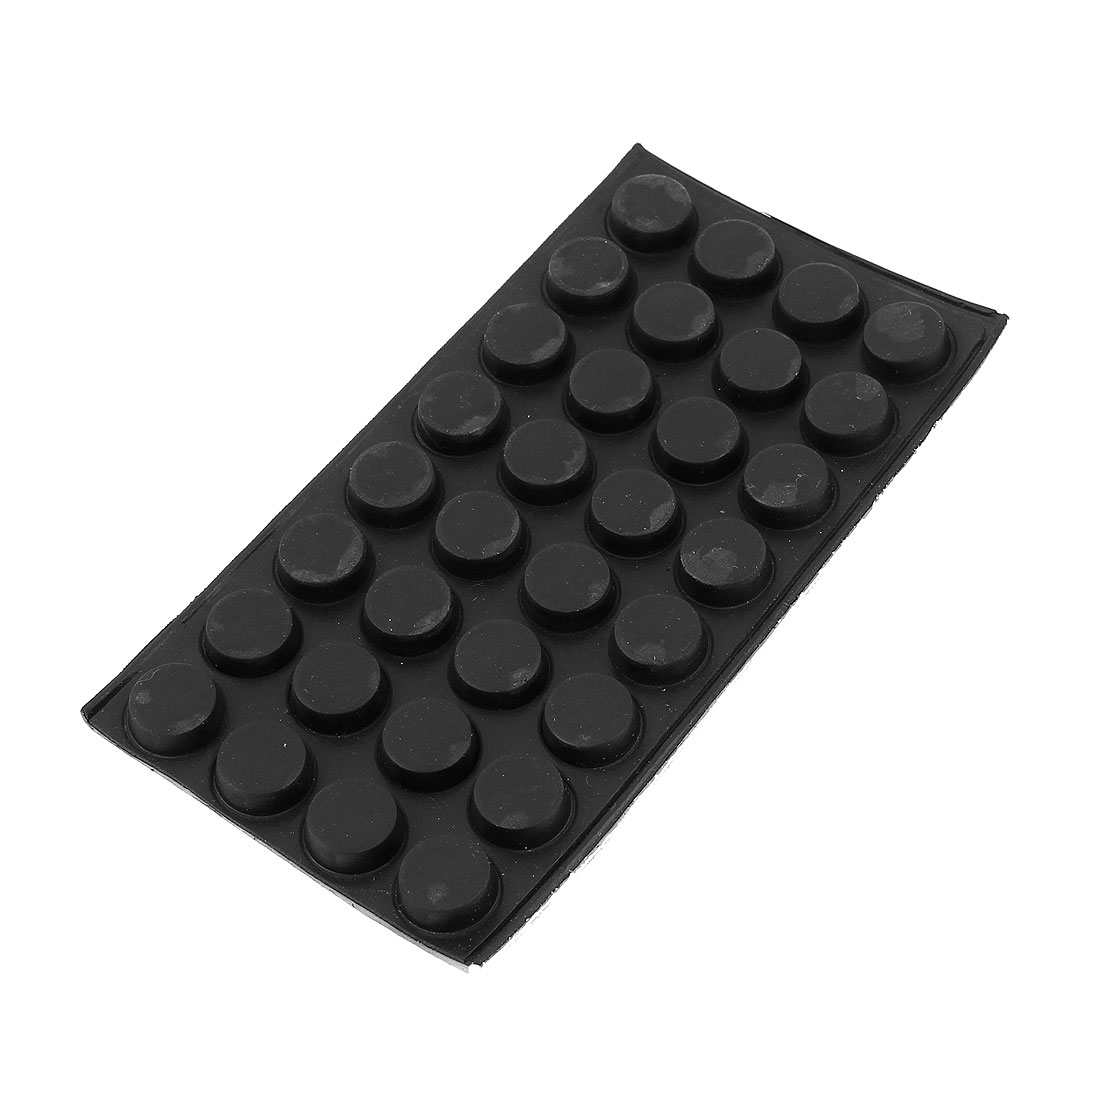 Round Shape Rubber Table Chair Furniture Leg Protect Mat Pad Black 32pcs